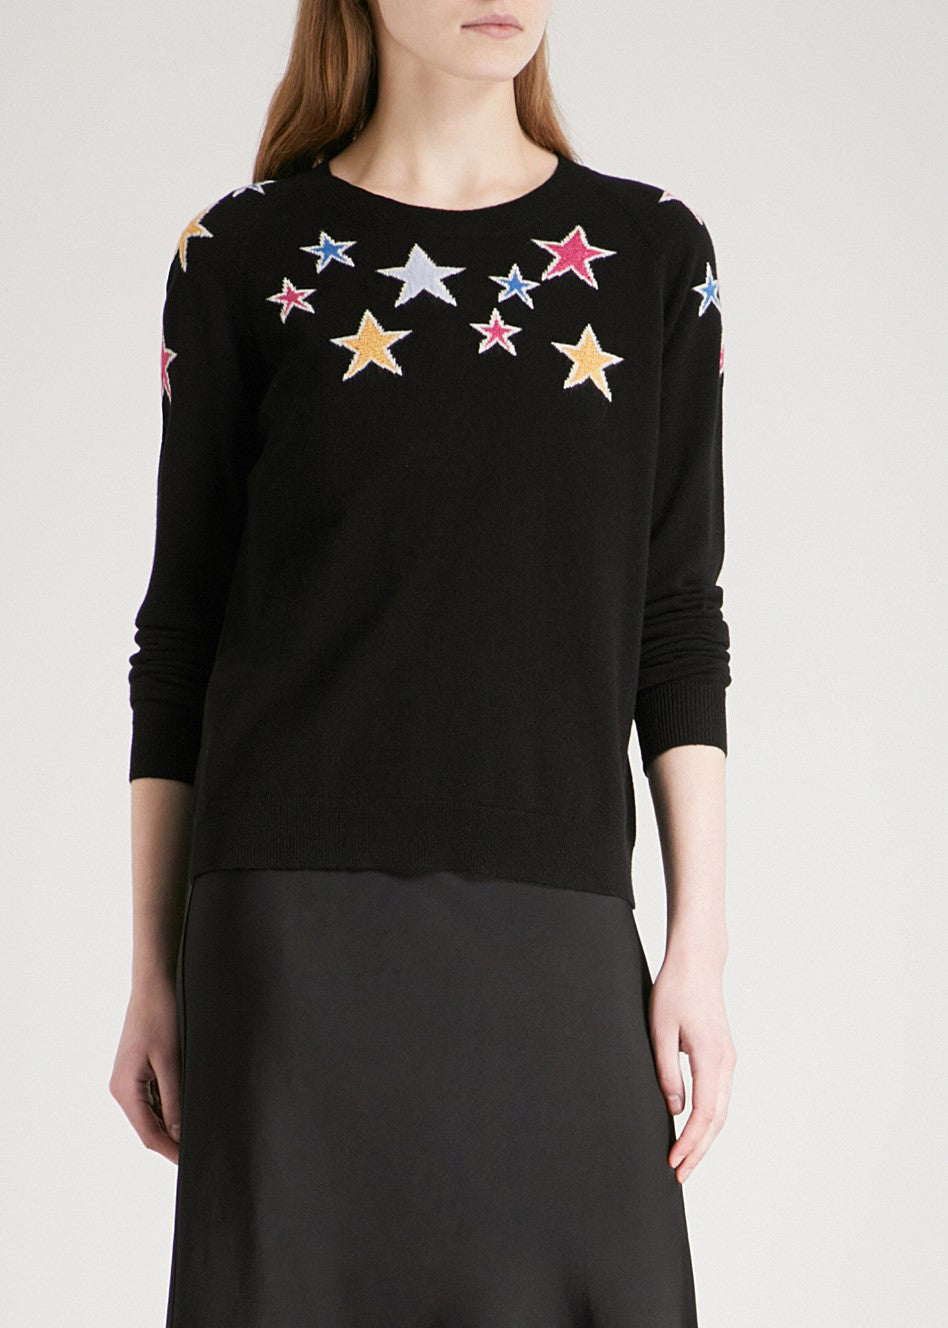 Chinti & Parker stardust sweater black